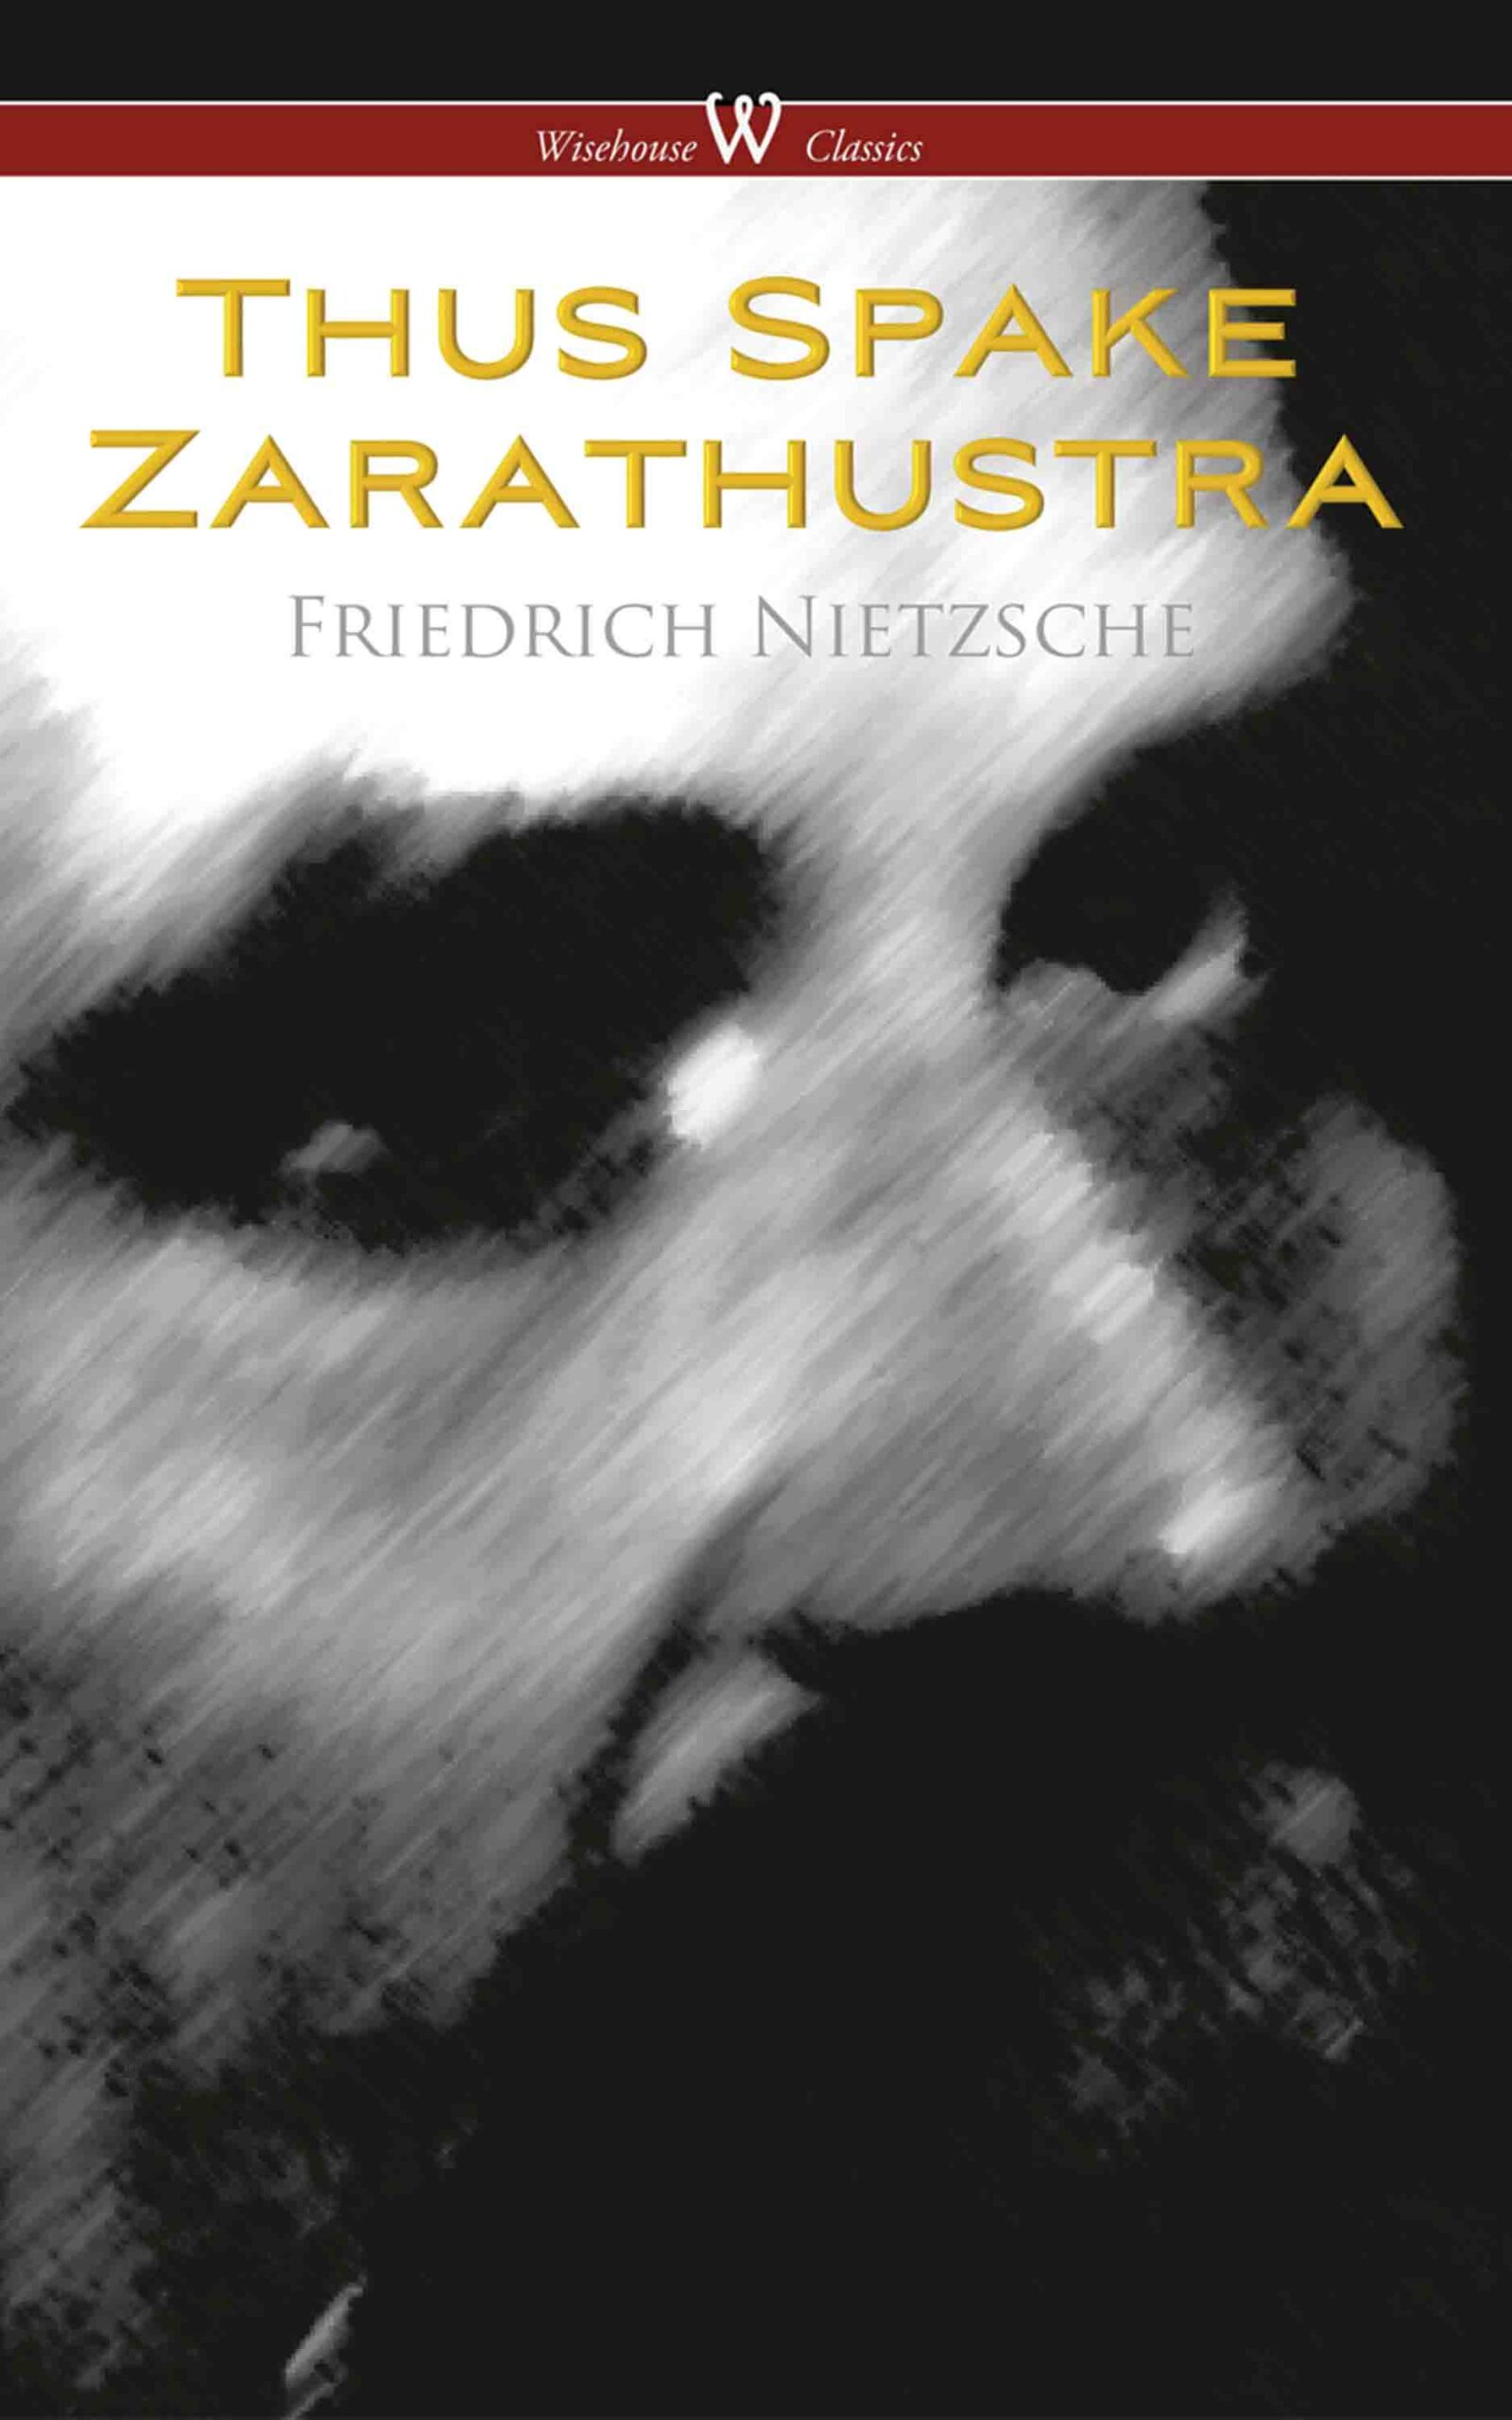 Thus Spake Zarathustra — A Book for All and None (Wisehouse Classics Edition)